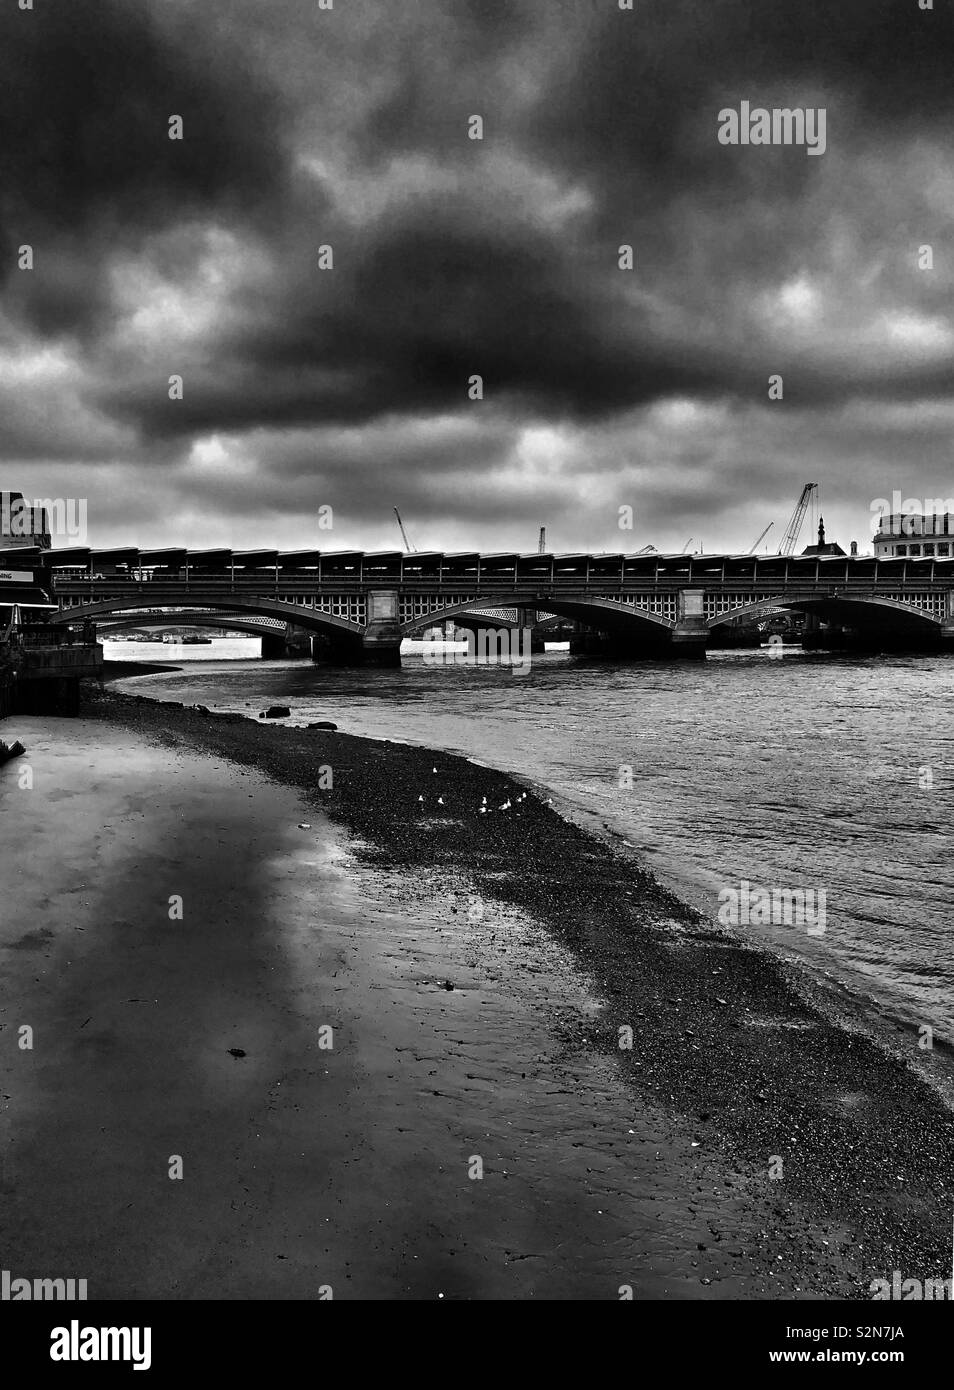 Dramatic clouds over the Blackfriars Bridge in London - Stock Image